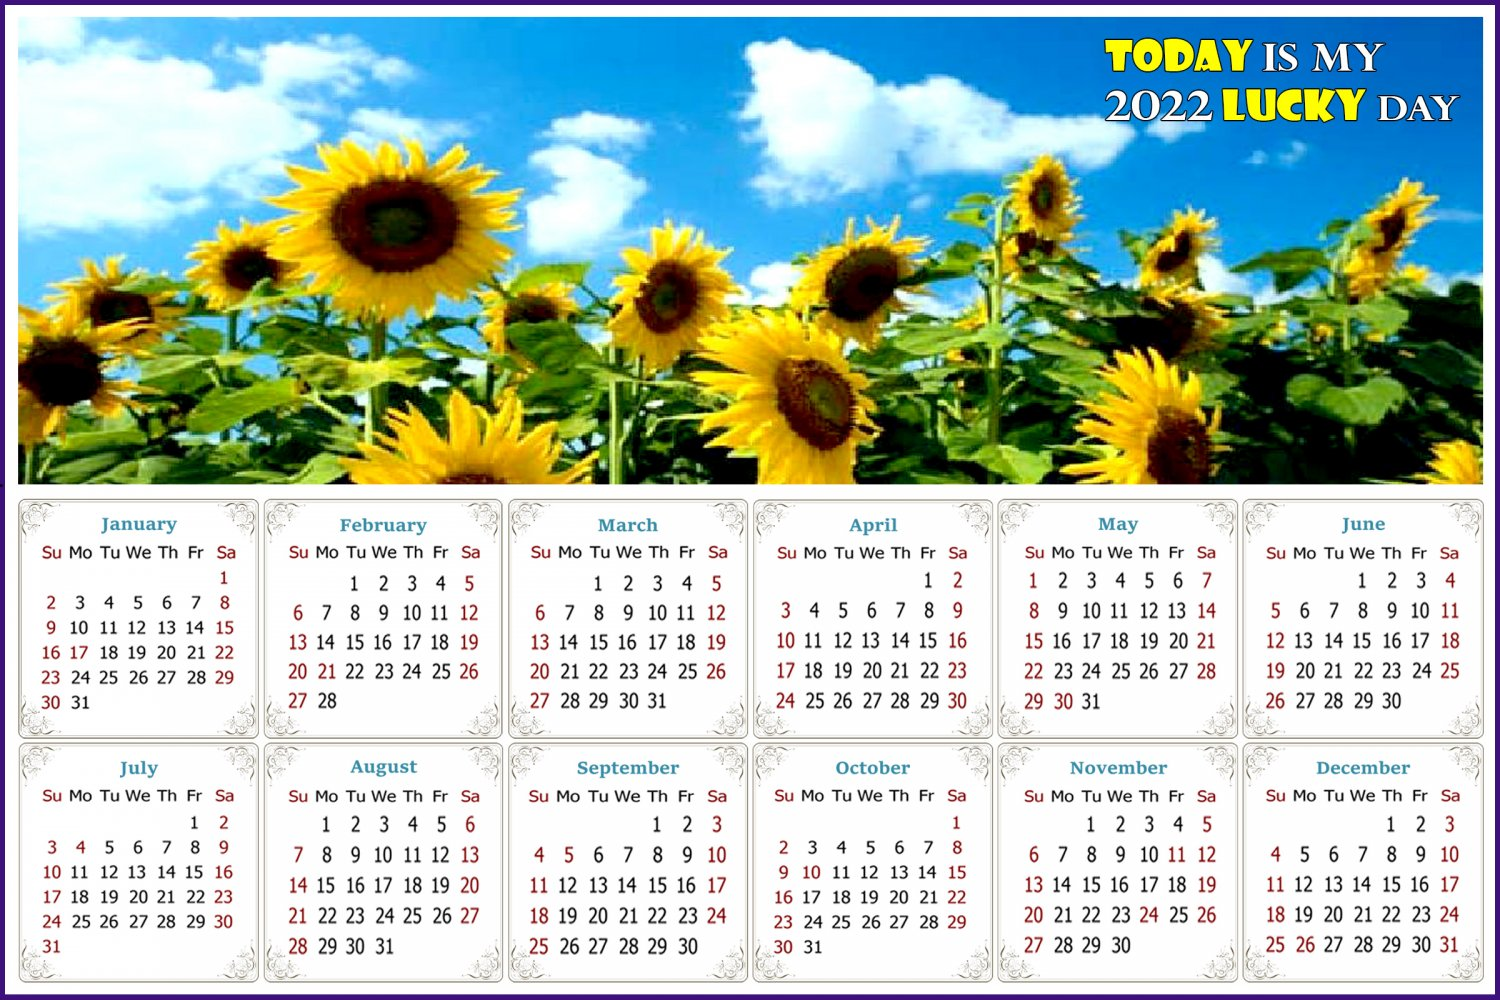 2022 Magnetic Calendar - Calendar Magnets - Today is my Lucky Day - Edition #34